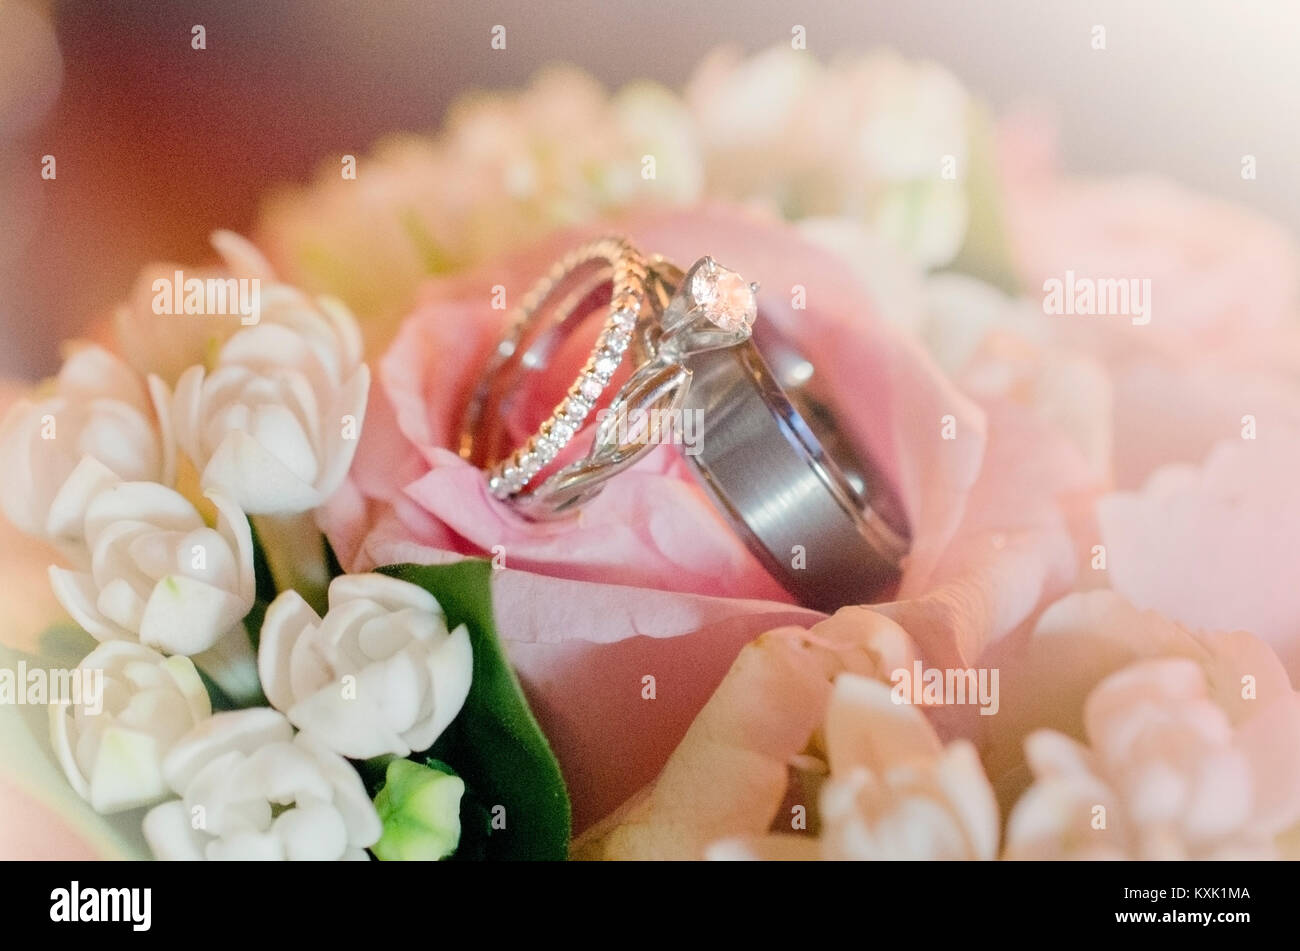 Diamond Rings Stock Photos & Diamond Rings Stock Images - Alamy